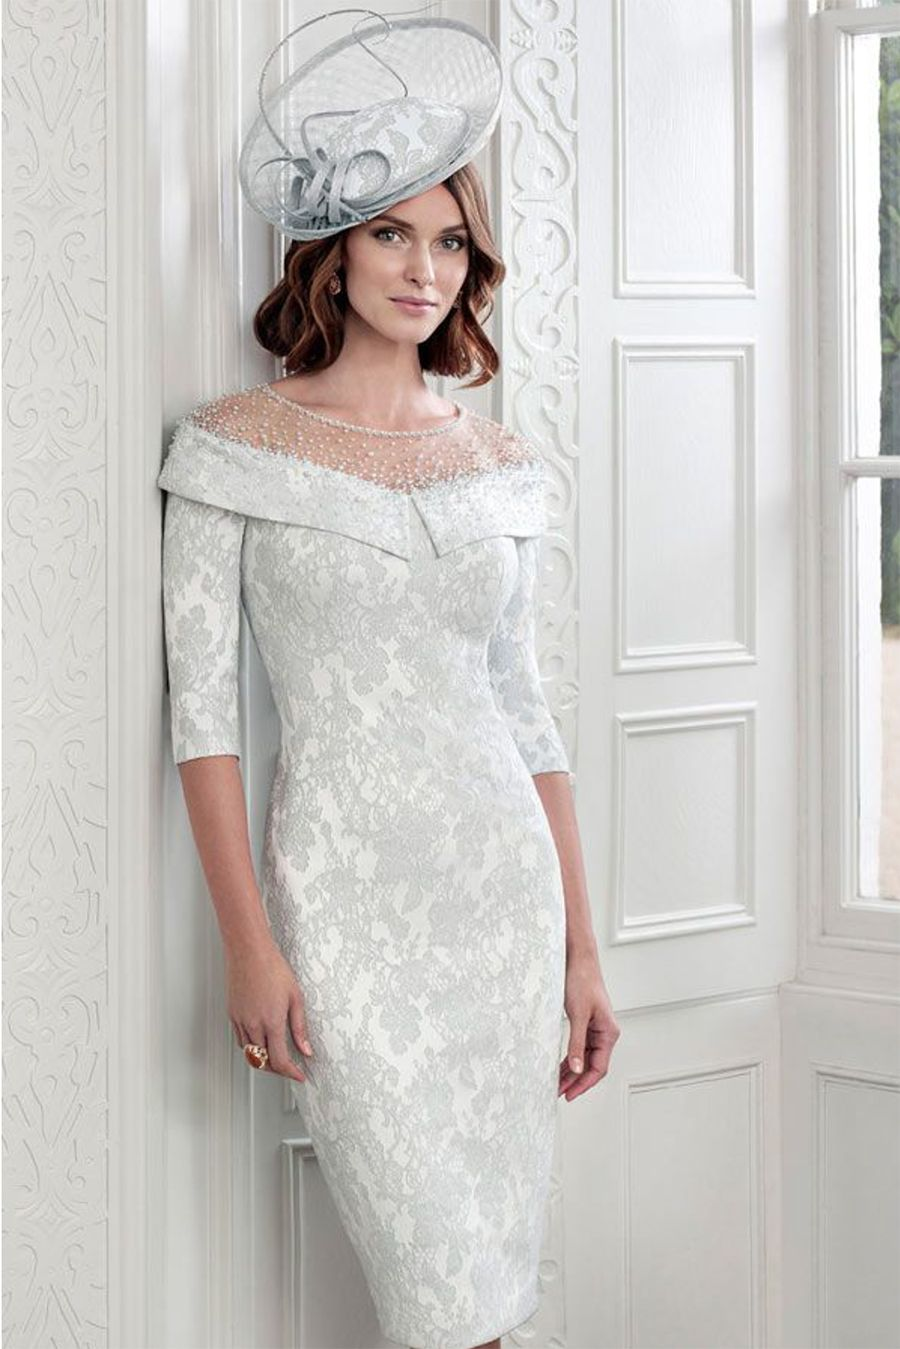 099d10ee72d0 Spring   Summer Mother of the Bride Fashion at Nicola Ross